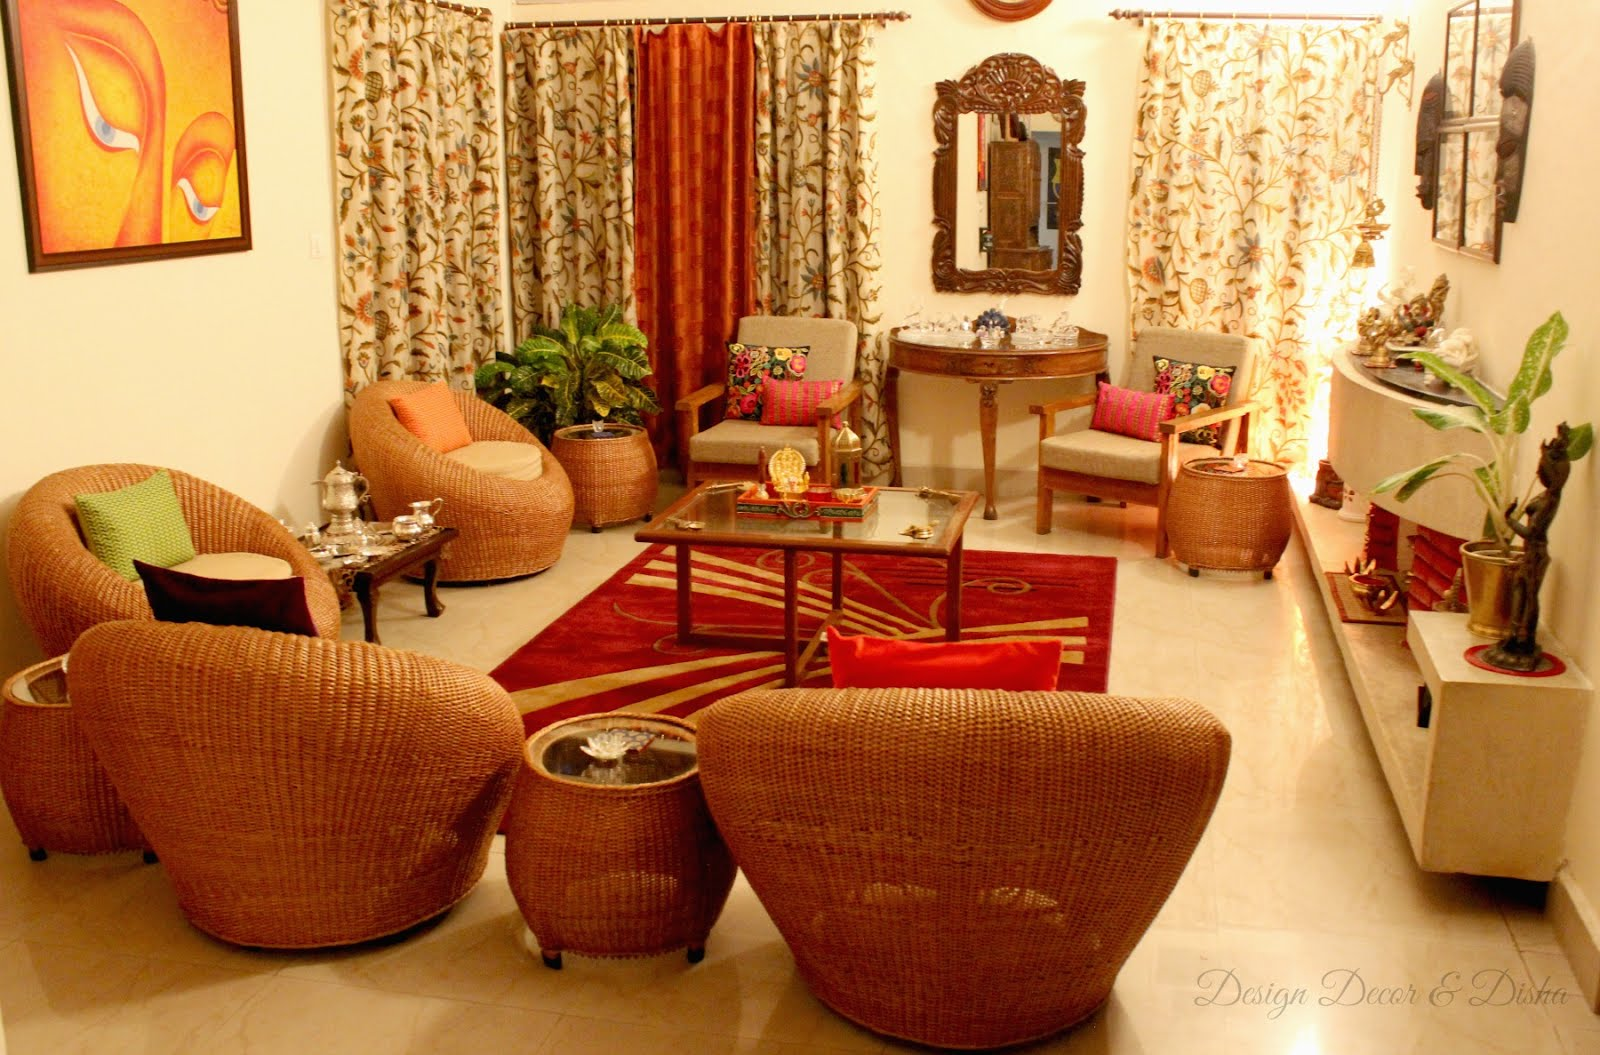 Design decor disha an indian design decor blog home for Simple living room designs in india